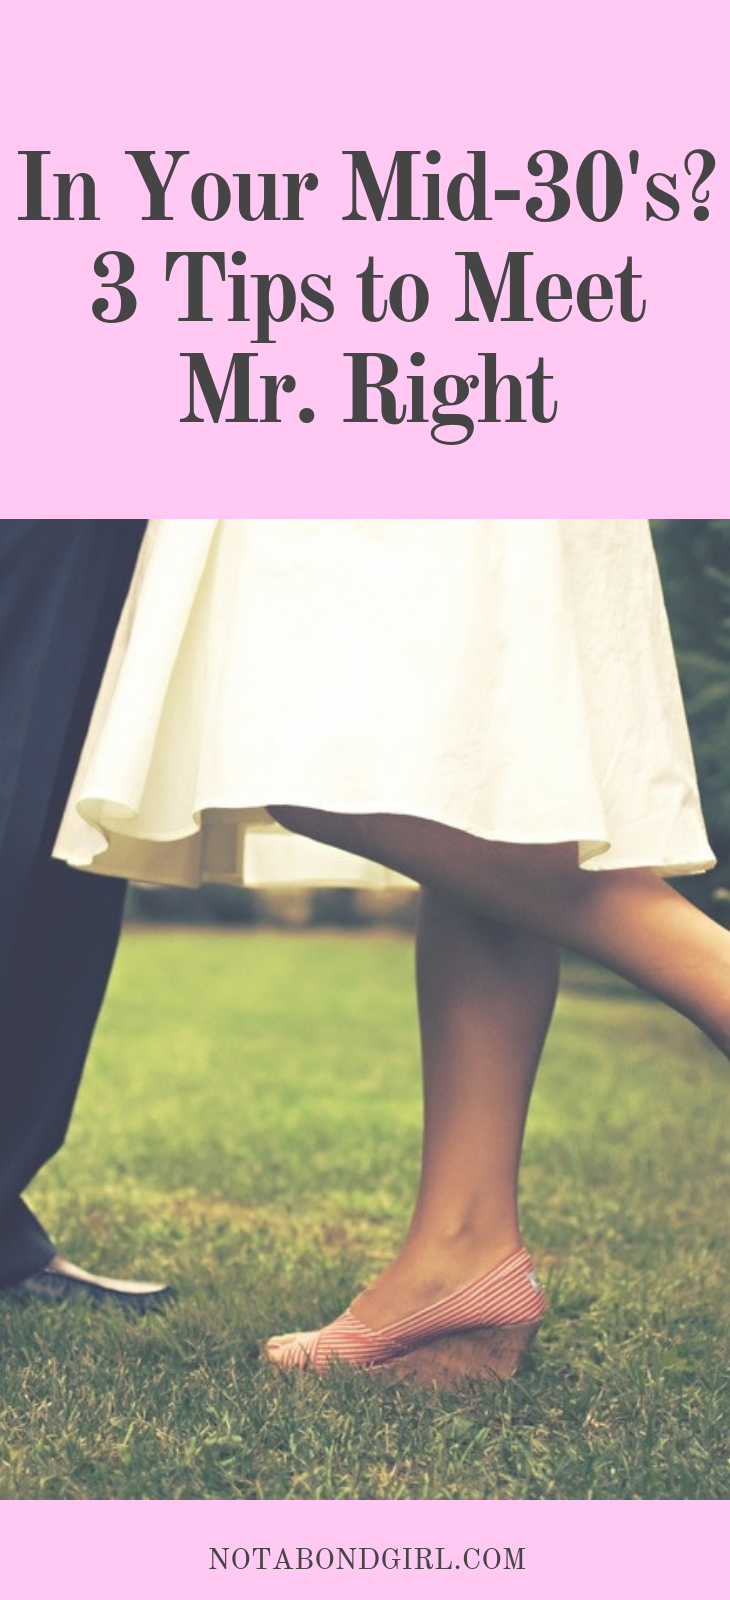 In Your Mid-30's? 3 Tips to Meet Mr. Right #relationship #soulmate #girlboss #feminist #loveadvice #relationshipgoals #datingadvice #datingtips #love #millennial